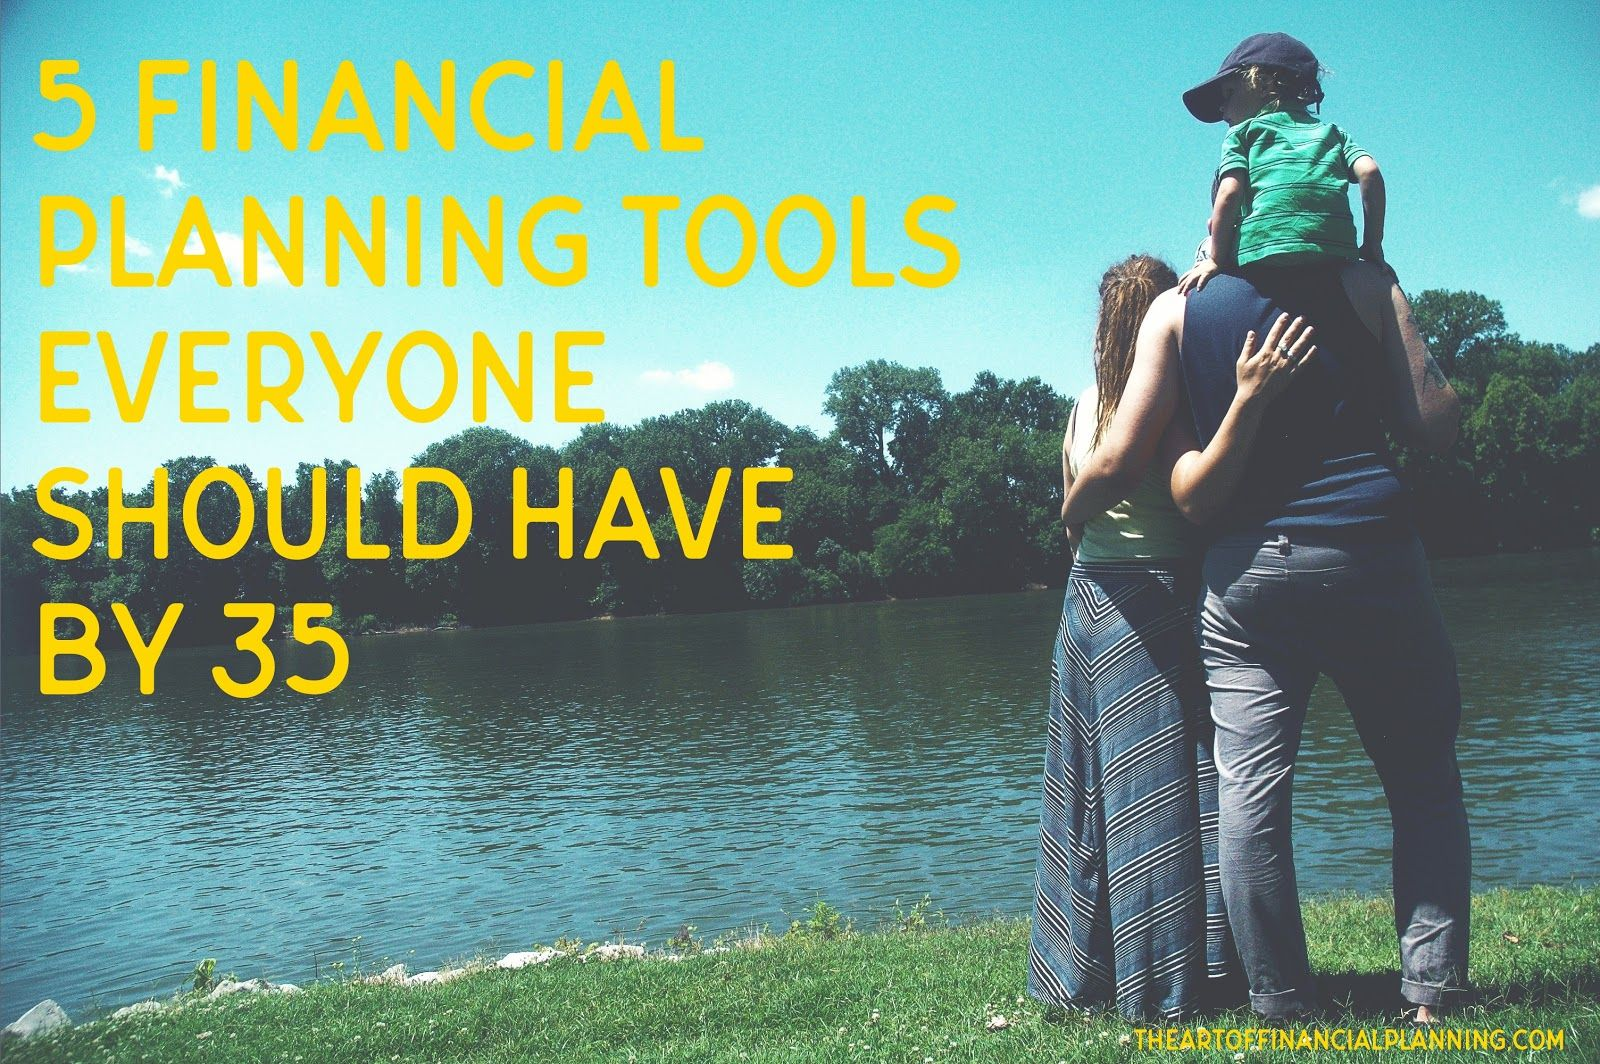 5 Financial Planning Tools Everyone Should Have By 35